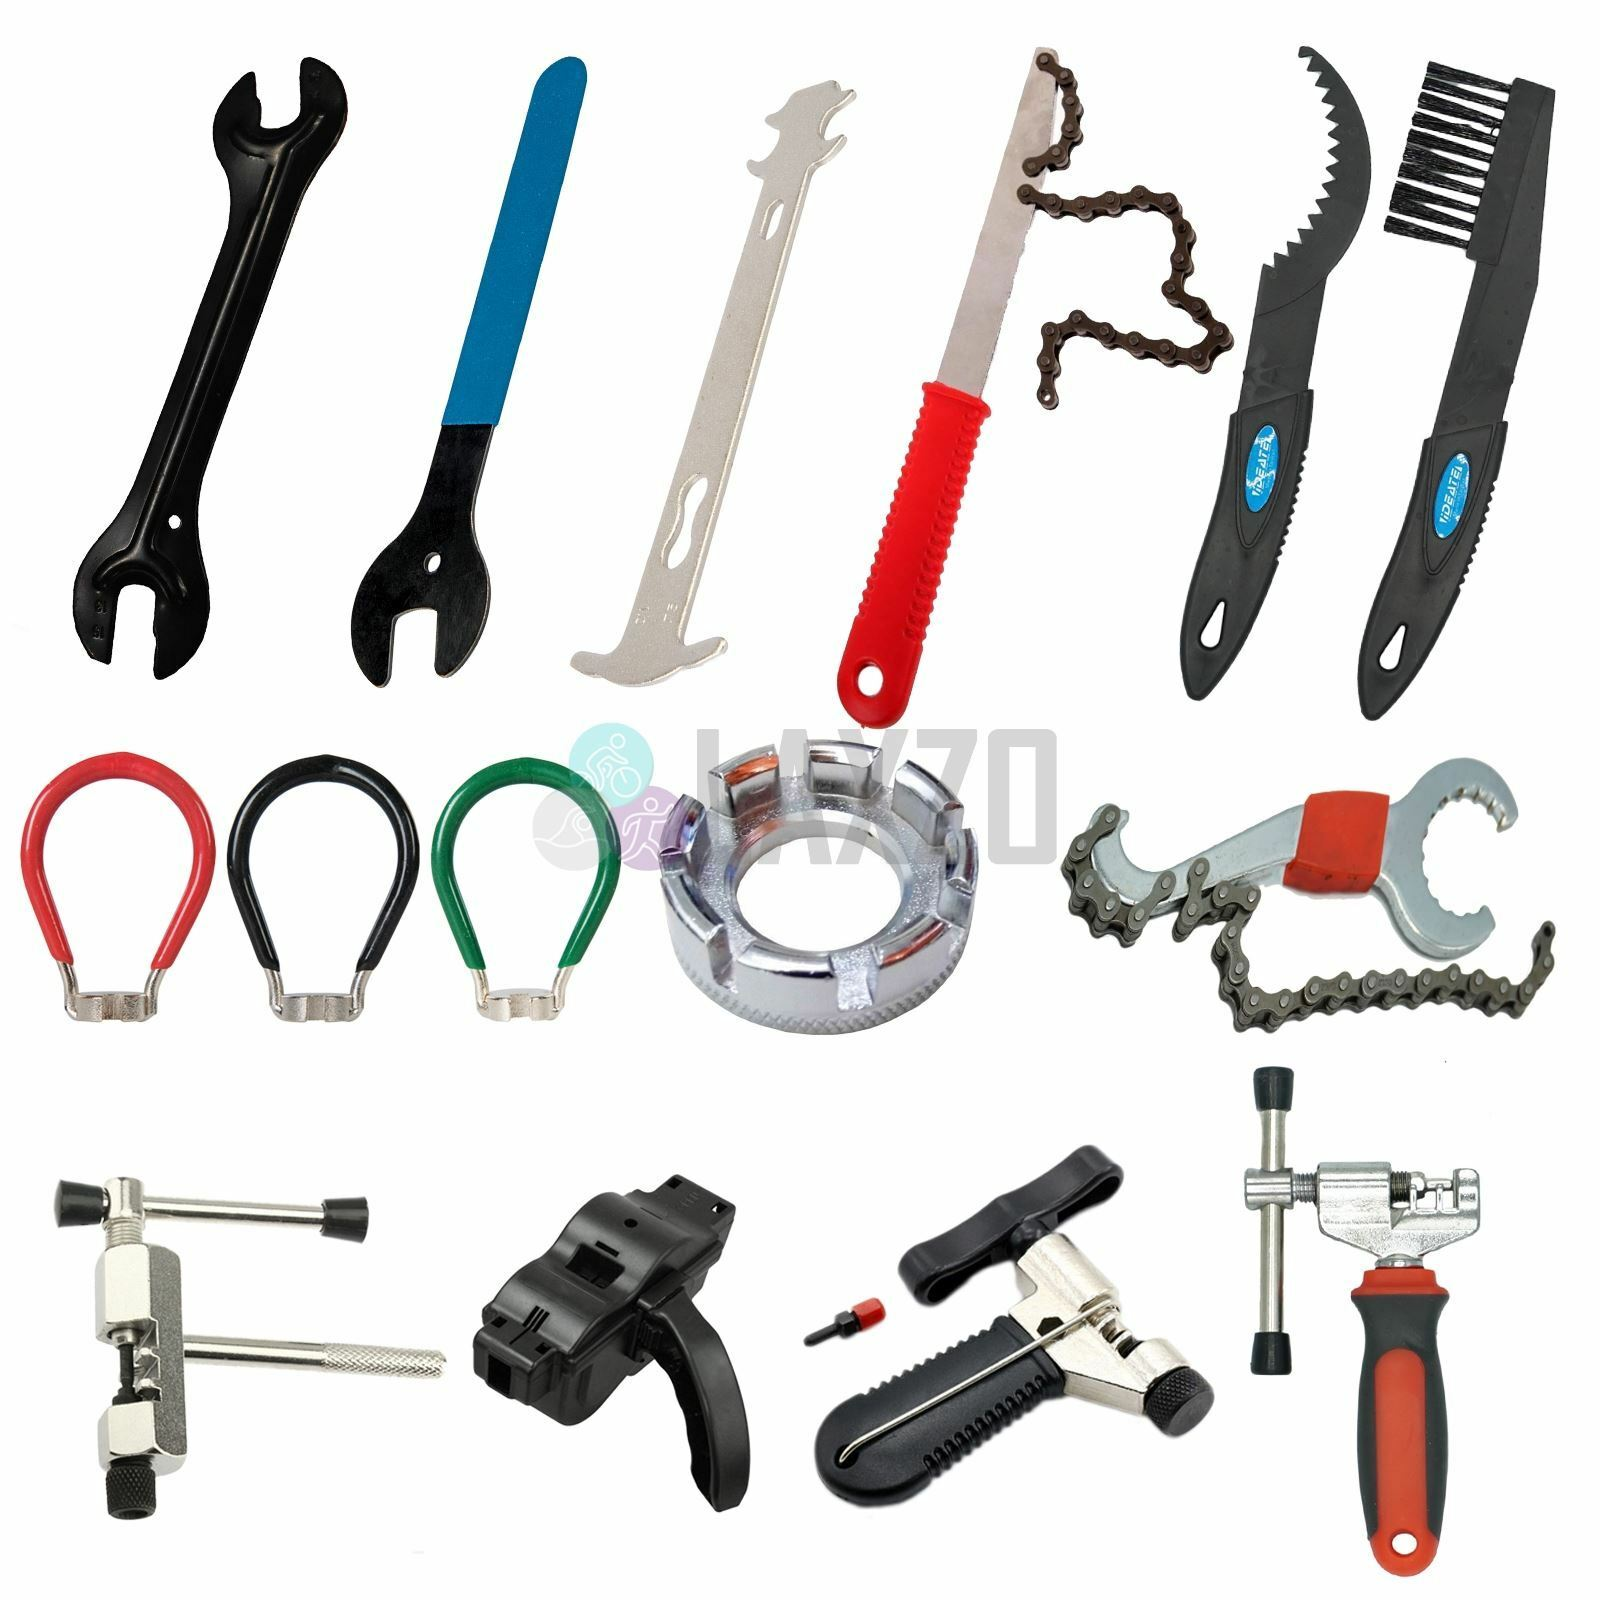 Steel Wrench For Bicycle Bike Bicycle Spoke Wrench Cycling Bike Repair Tool RS